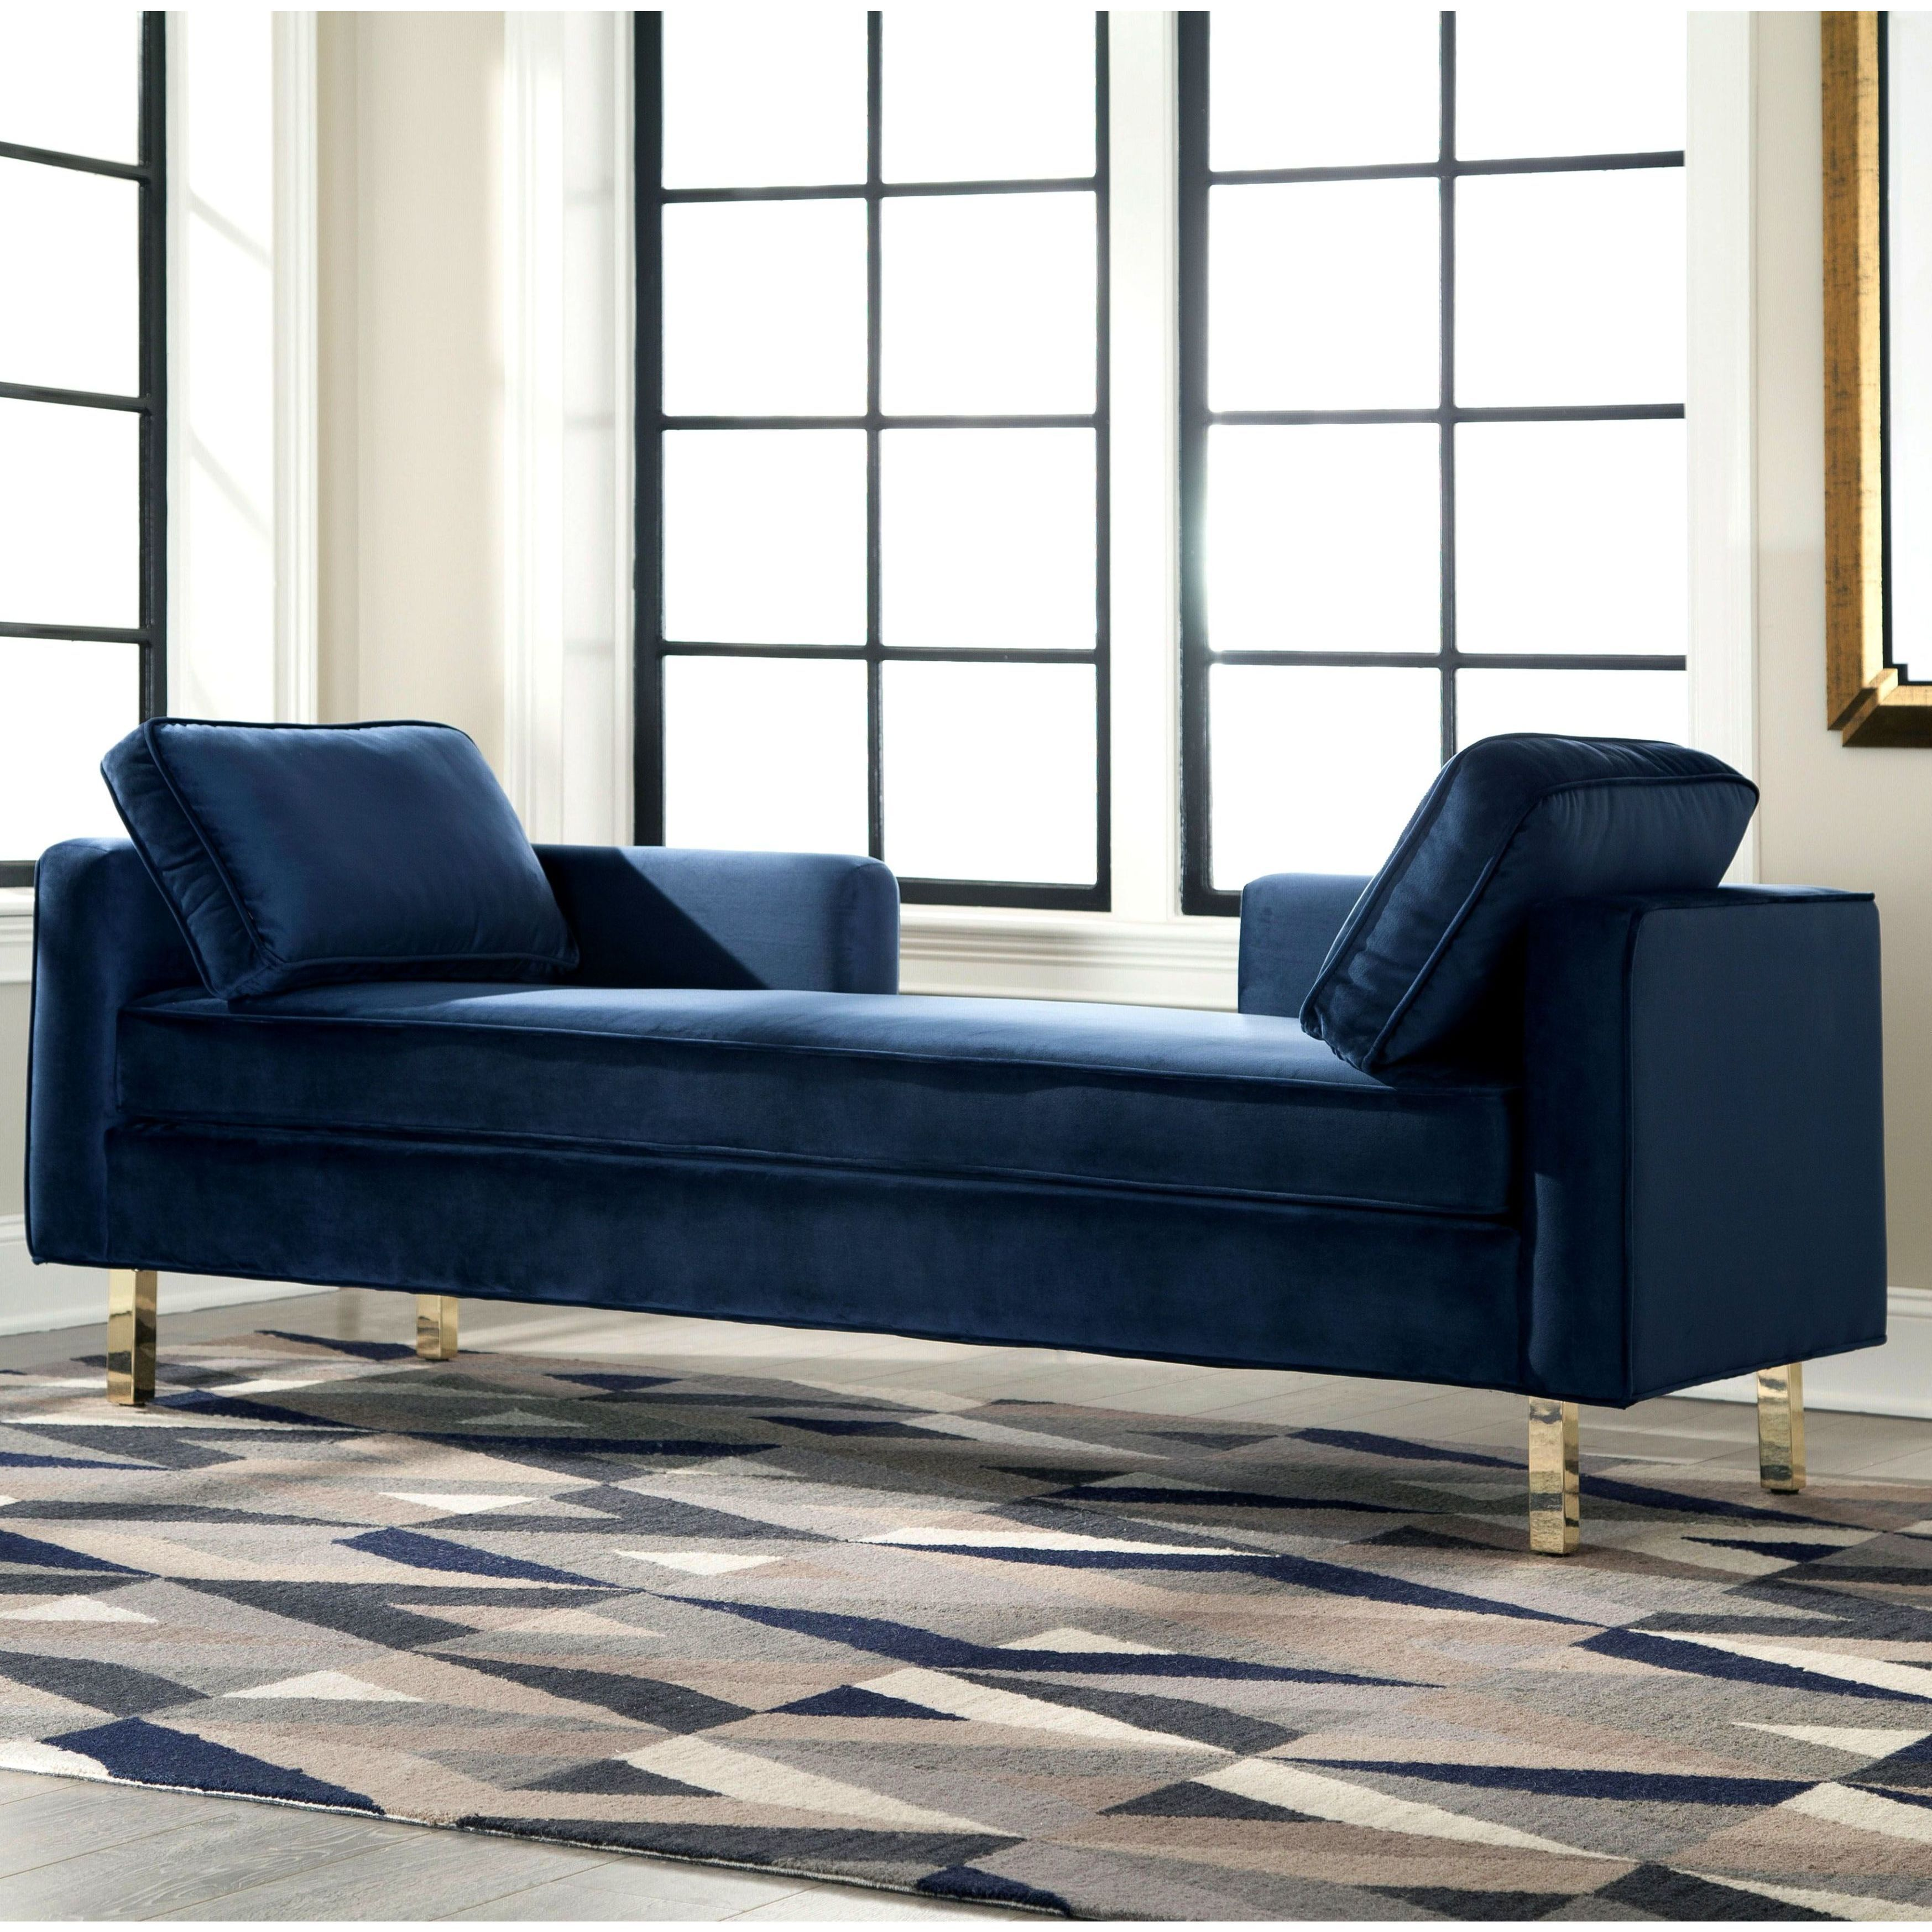 Donny Osmond Home Accent Seating Modern Double Chaise With Navy Fabric Coaster Fine Furniture